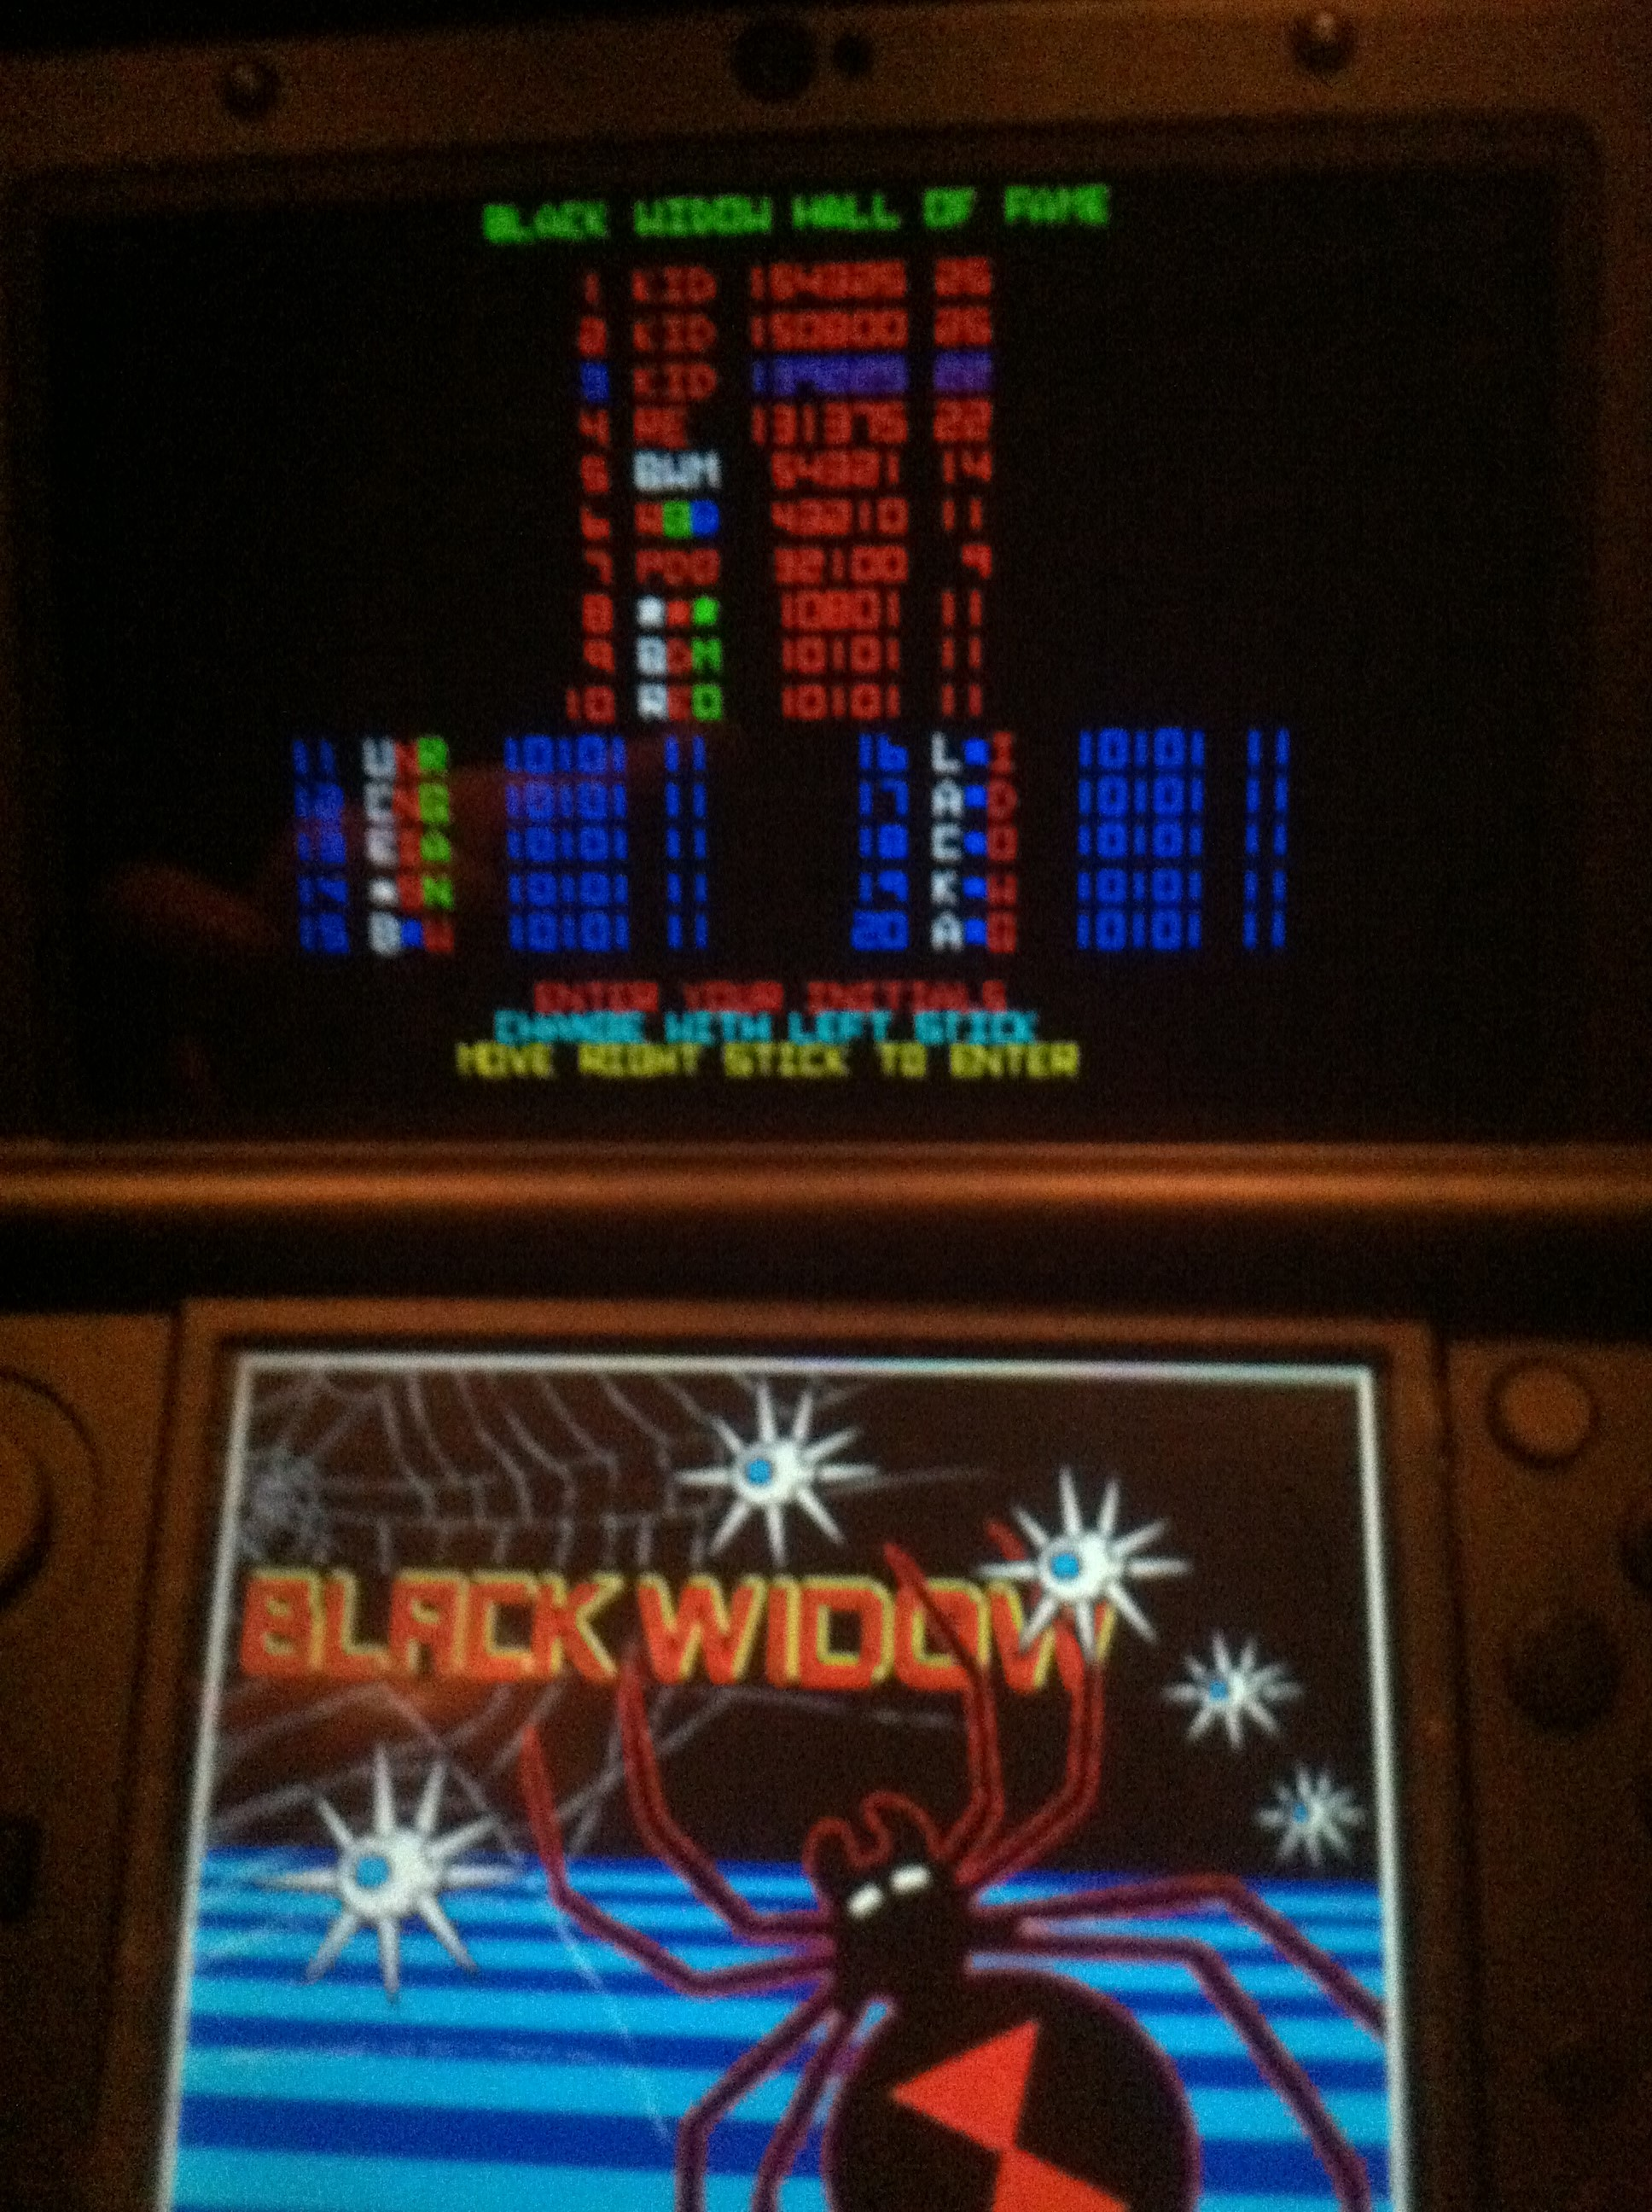 DakotaKid: Atari Greatest Hits: Volume 2: Black Widow [Arcade] (Nintendo DS) 139,225 points on 2017-09-14 23:29:48